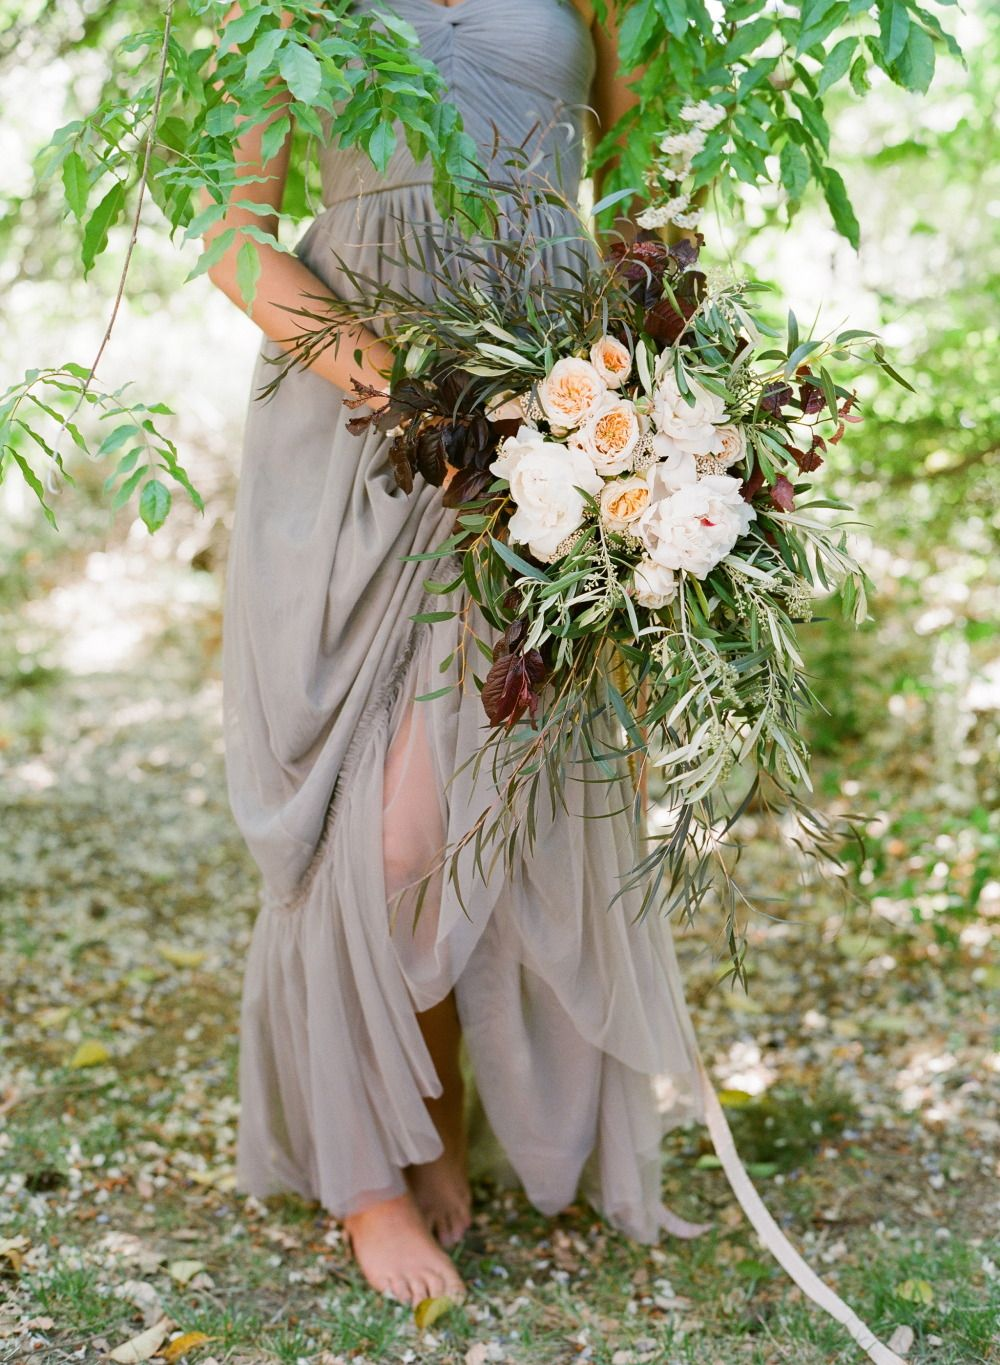 Design your wedding dress free  Where wild flowers are roaming free  Jose Villa  BOUQUETS